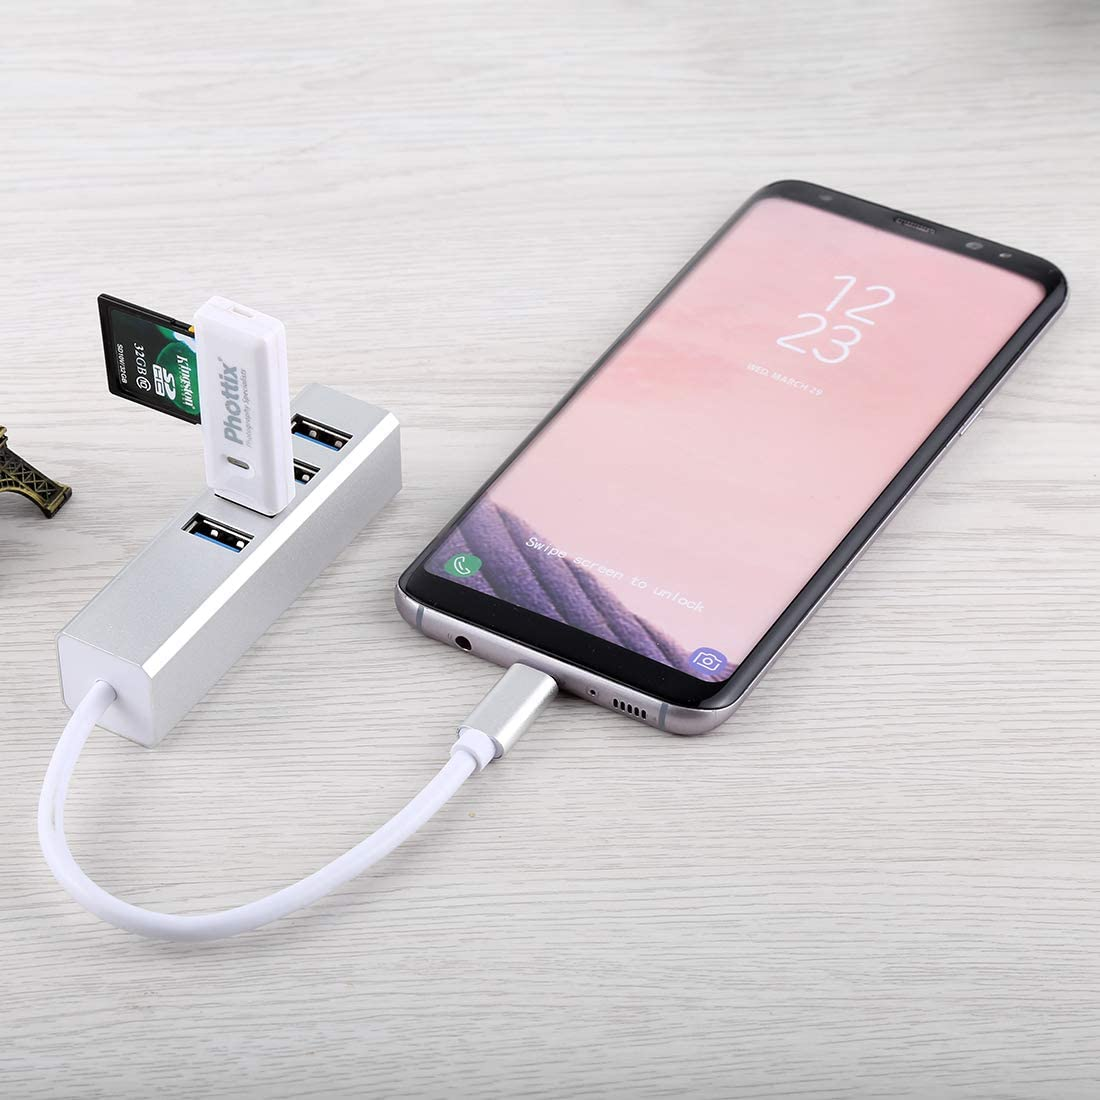 JINYANG USB Hub 5Gbps Super Speed Self//Bus Power 4 Ports USB 3.0 to USB-C//Type-C HUB Converter Color : Silver Silver